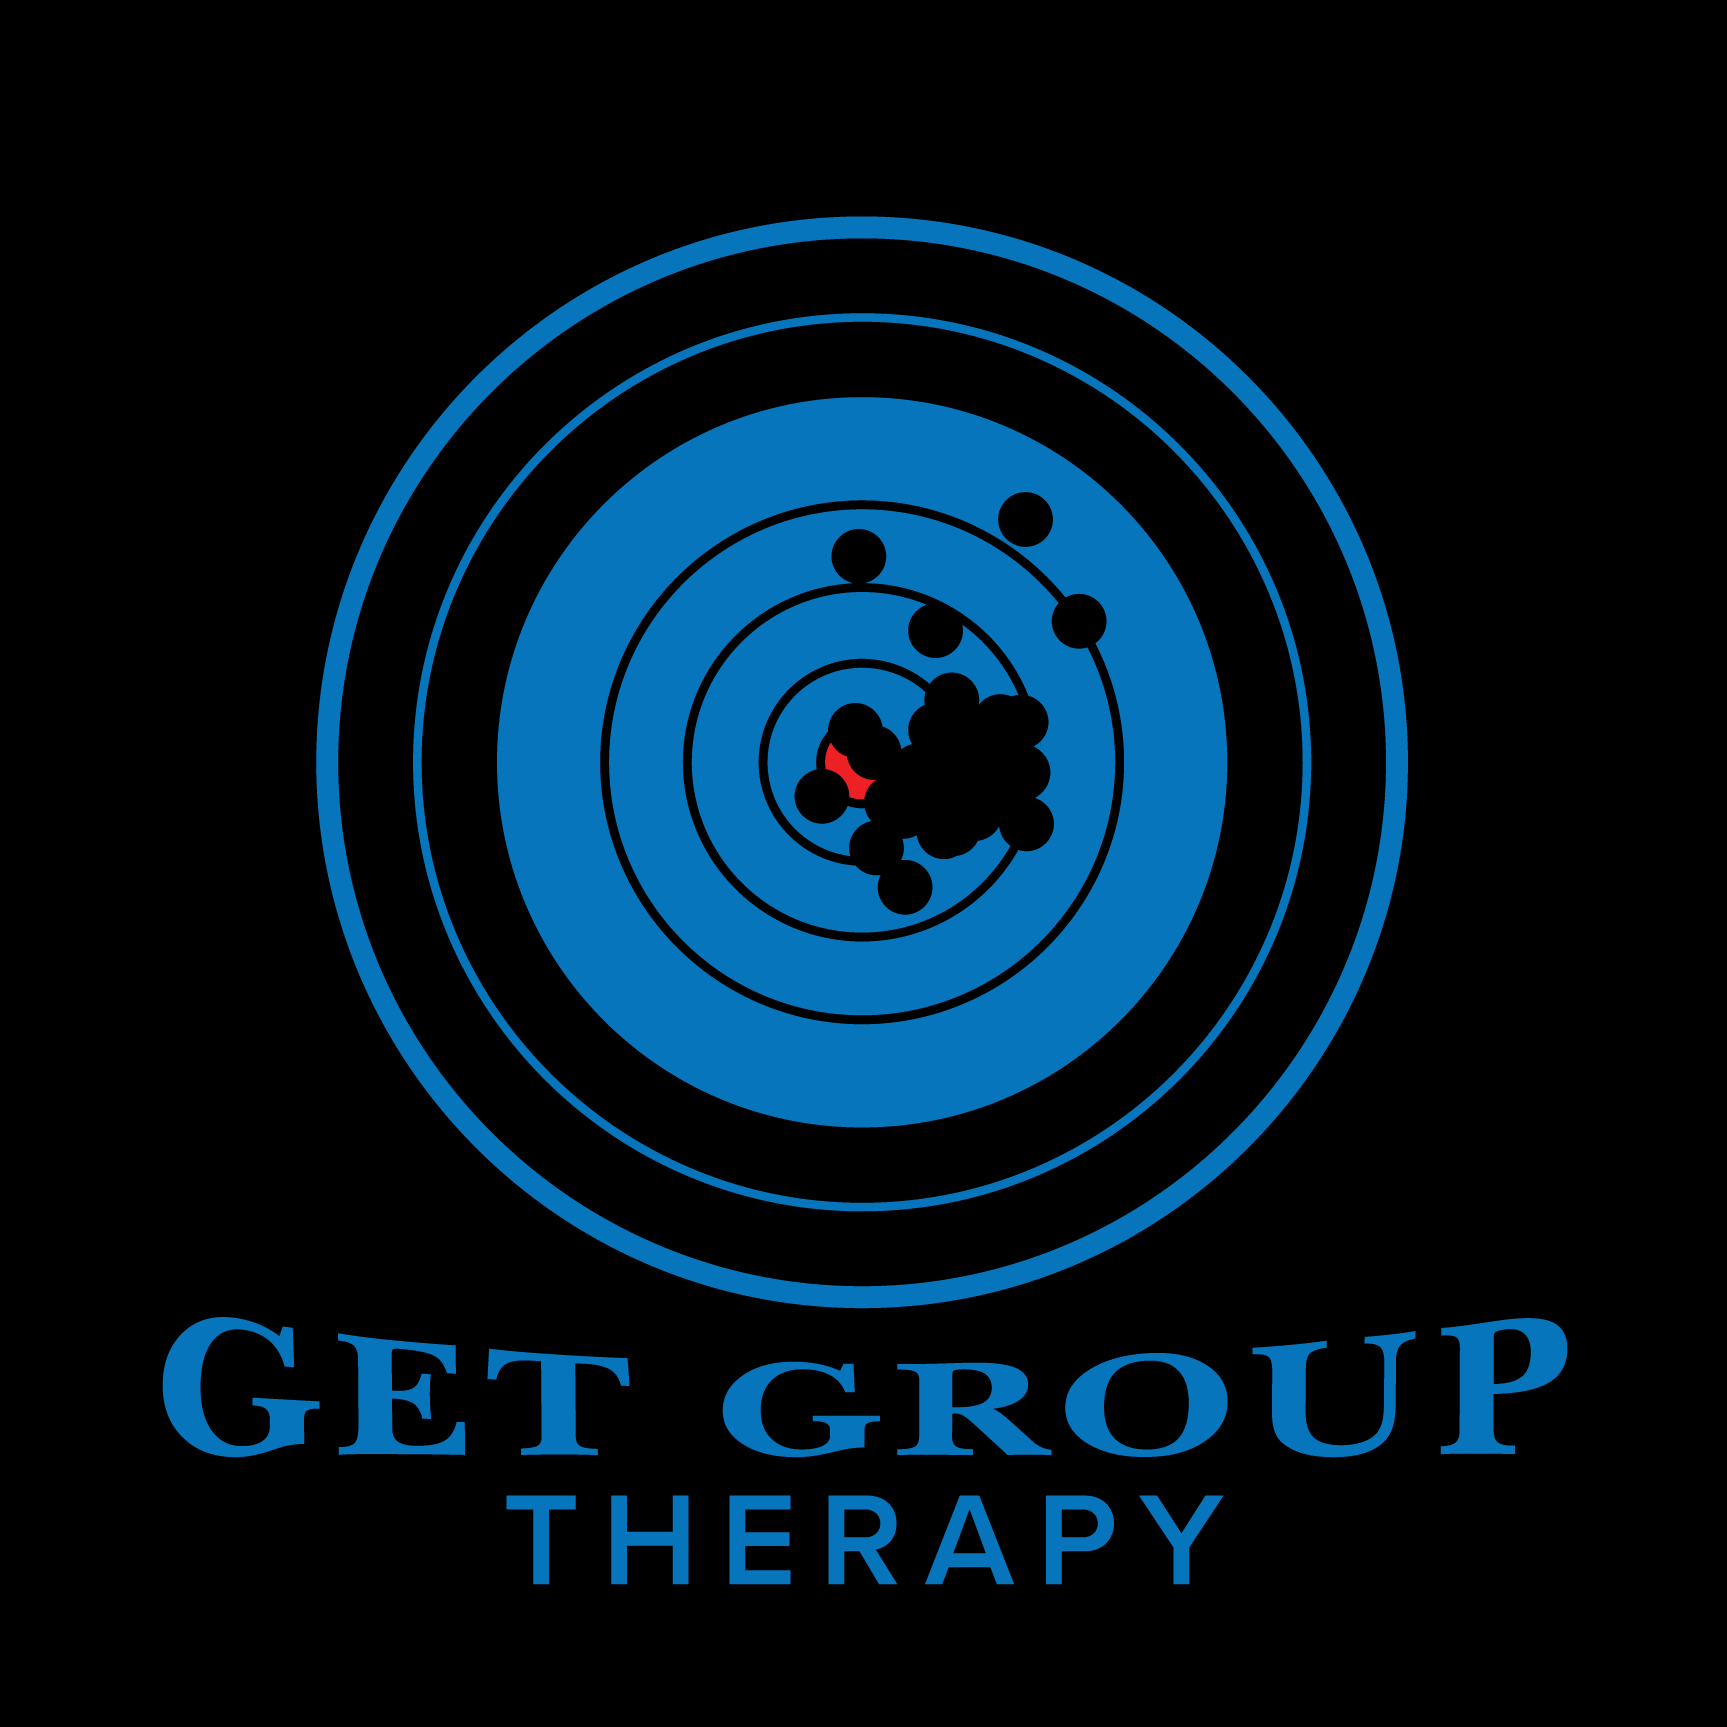 Get Group Therapy